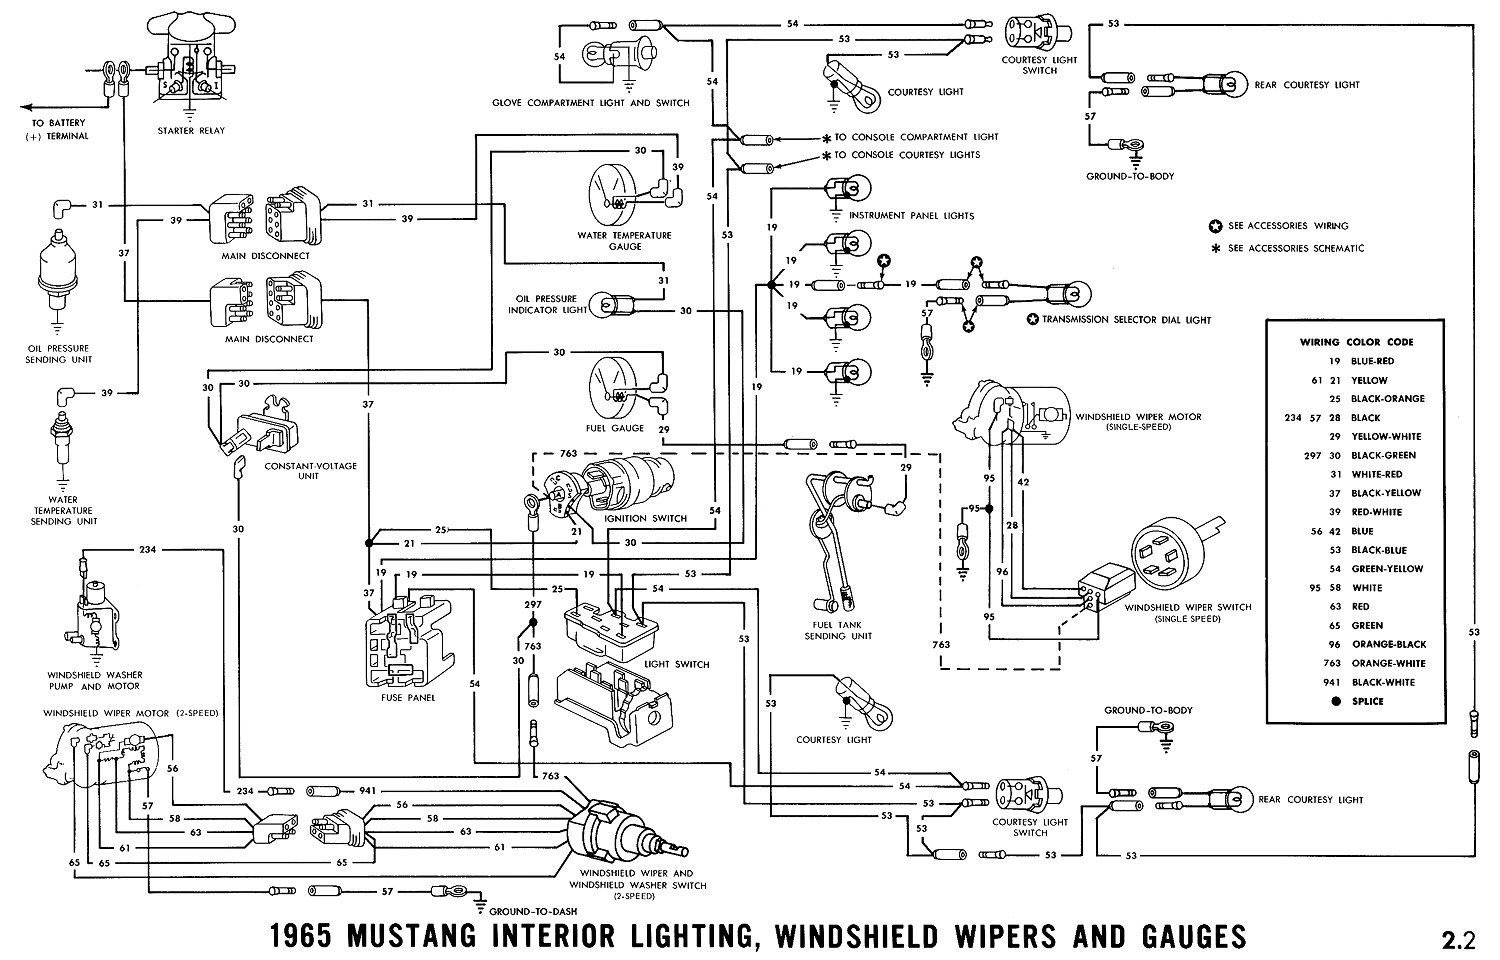 1965 Corvette Wiring Diagram Switch Library Ford Harnesses Mustang Headlight Schematic Reinvent Your Rh Gearway Co Harness 58